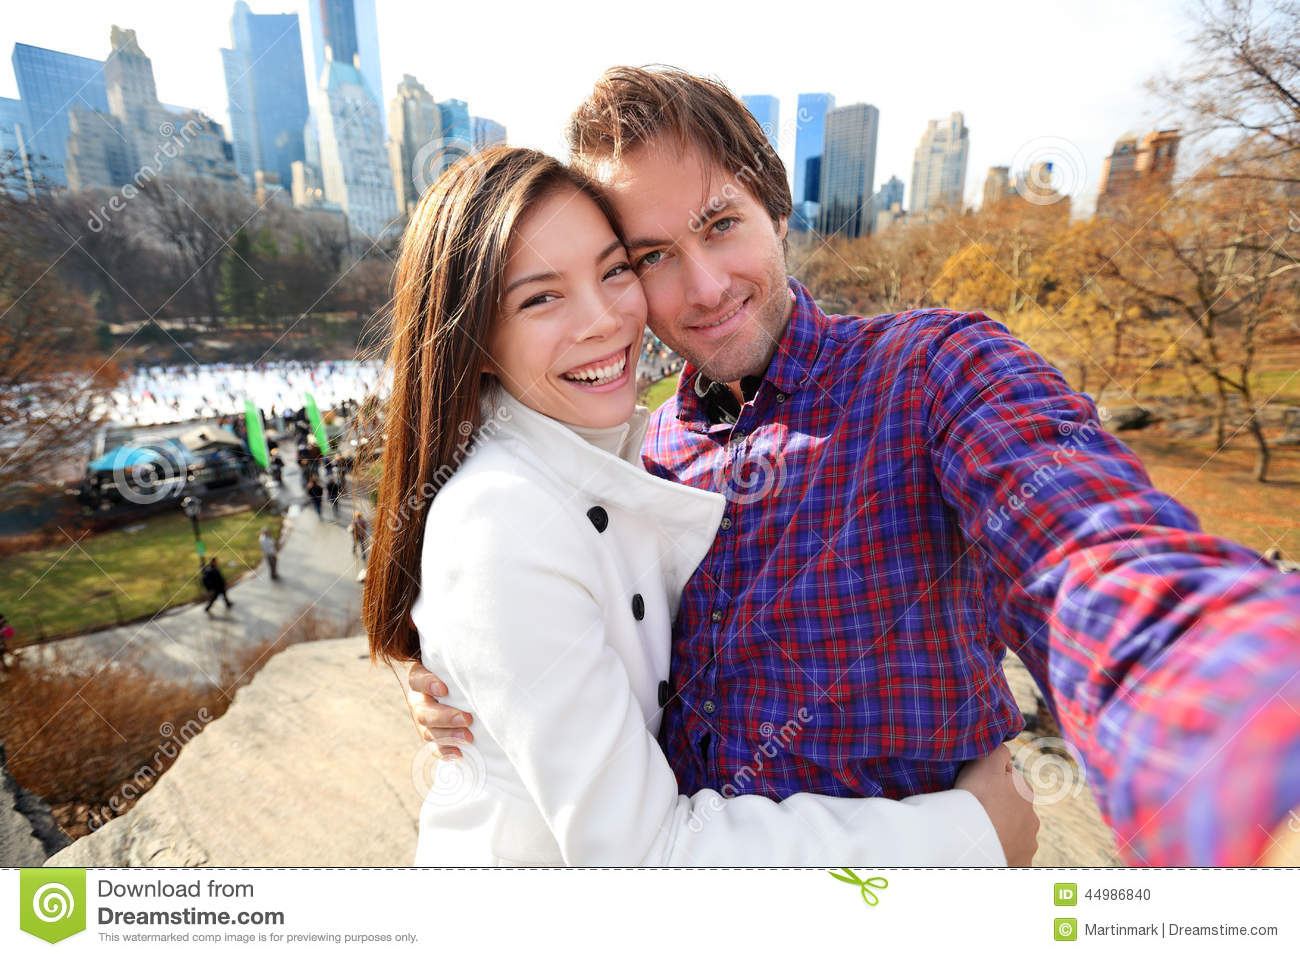 http://thumbs.dreamstime.com/z/dating-couple-love-central-park-new-york-city-young-happy-taking-self-portrait-selfie-photo-late-fall-early-winter-44986840.jpg